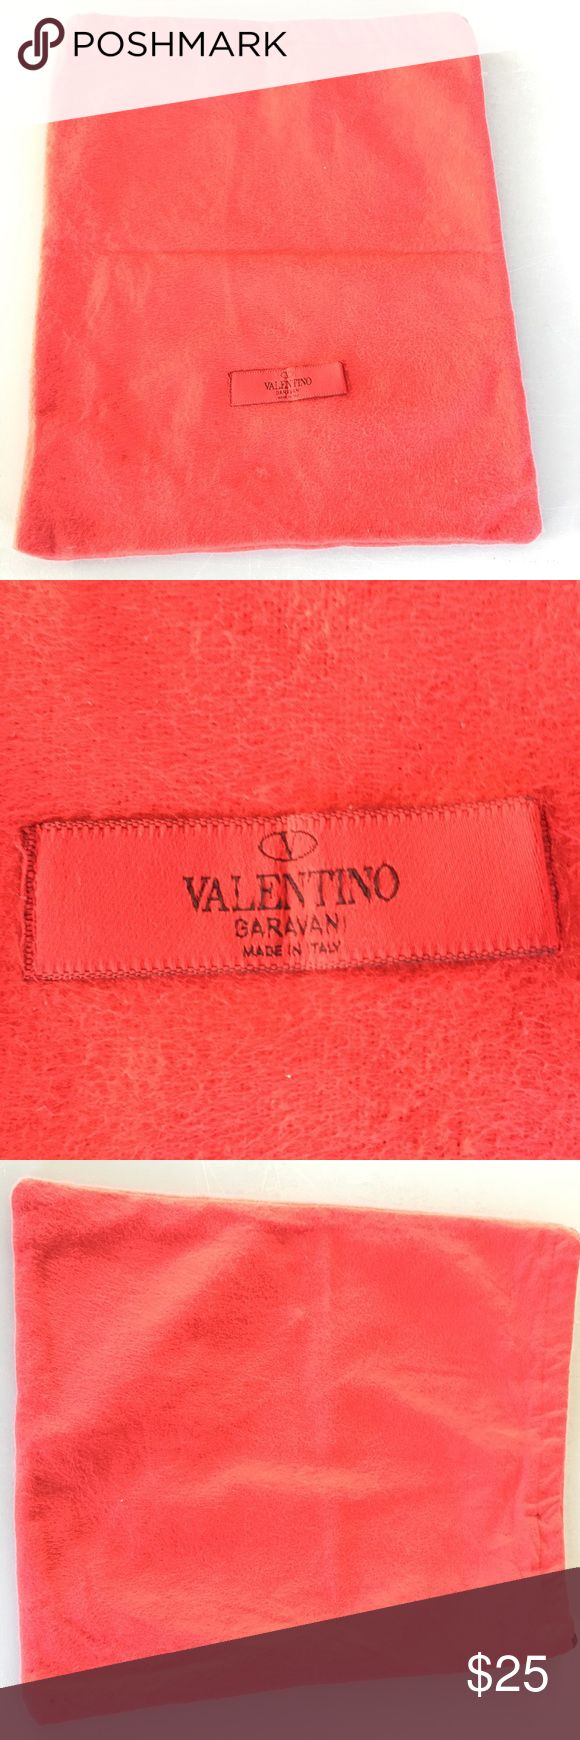 """Valentino Garavani Tote Valentino Garavani made in Italy Red 13""""x11"""" Cinch Bag is a soft Velvet like exterior fabric with a protective interior red mesh fabric for traveling with delicate pieces.  Original purchase was sandals ($500) that came in this bag Valentino Garavani Bags Mini Bags"""